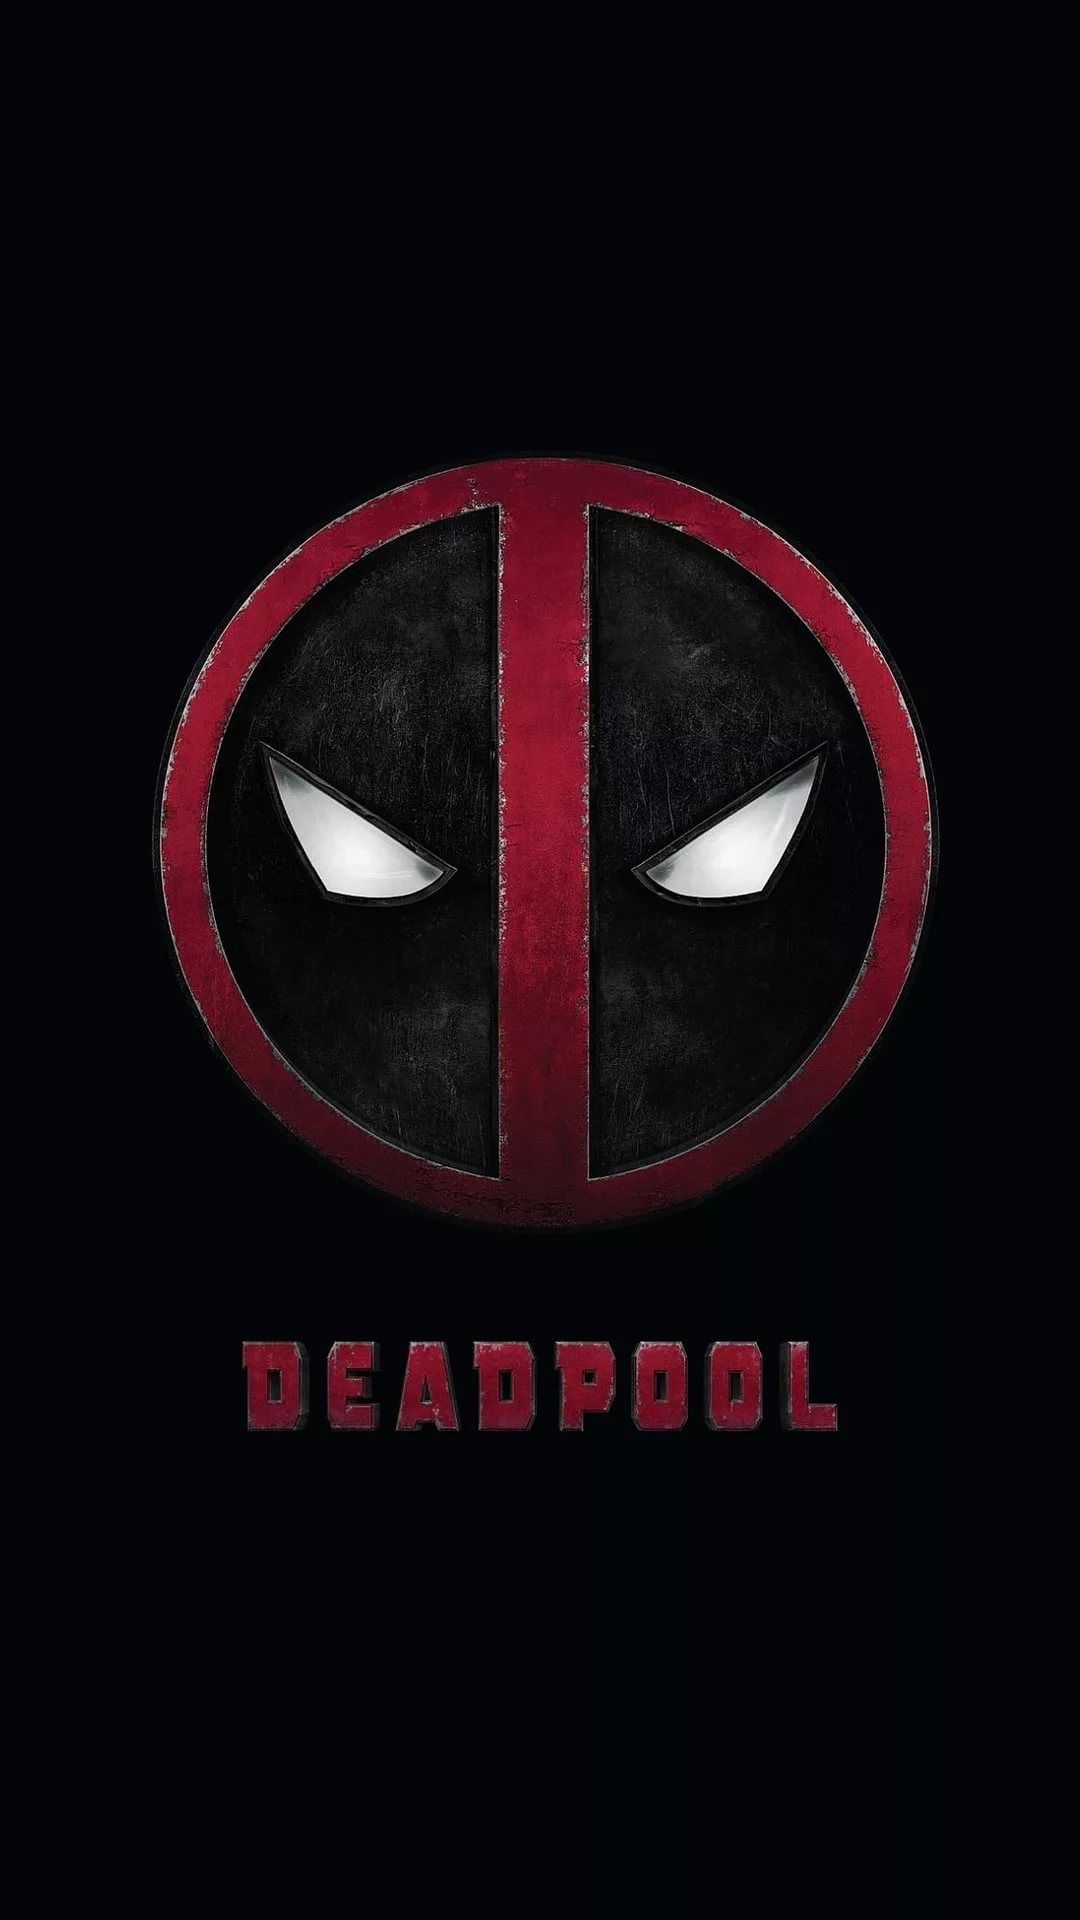 Deadpool wallpaper for android